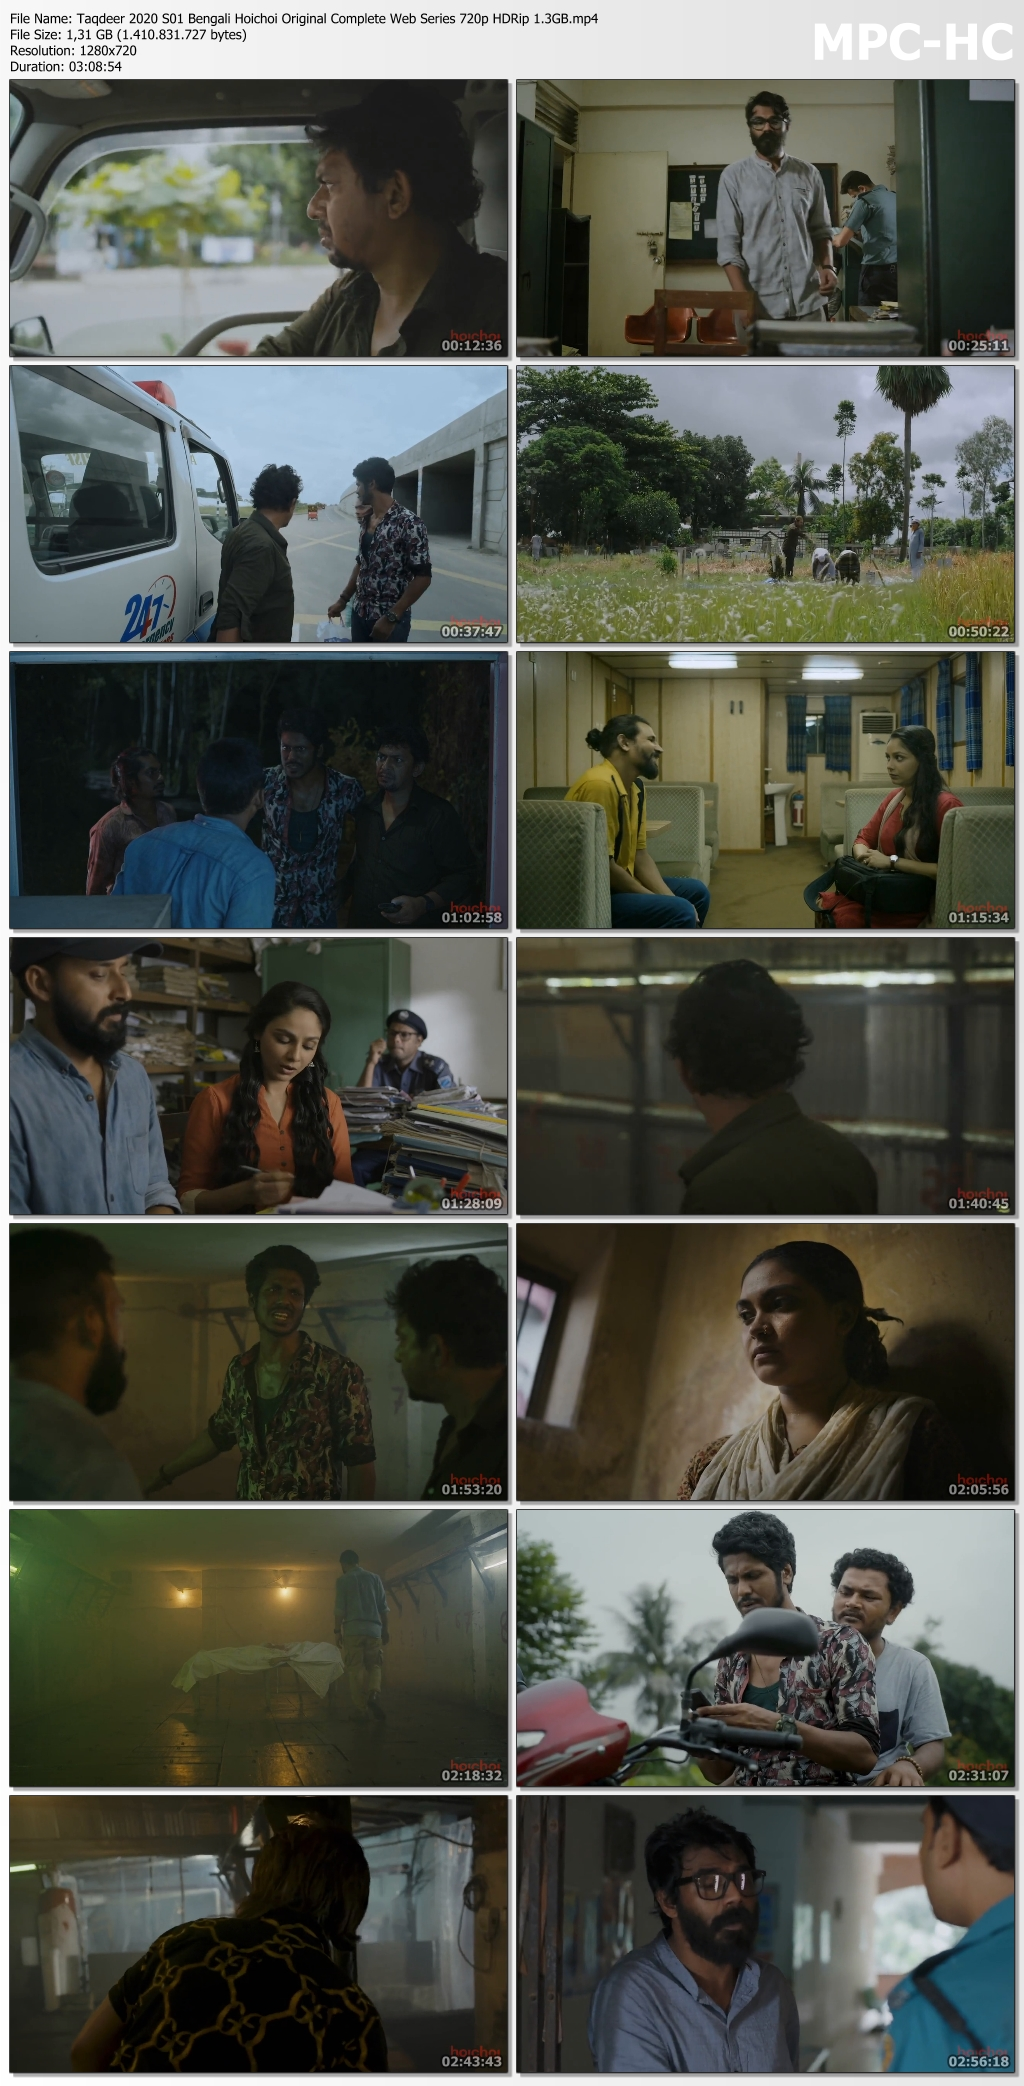 Taqdeer-2020-S01-Bengali-Hoichoi-Original-Complete-Web-Series-720p-HDRip-1-3-GB-mp4-thumbs